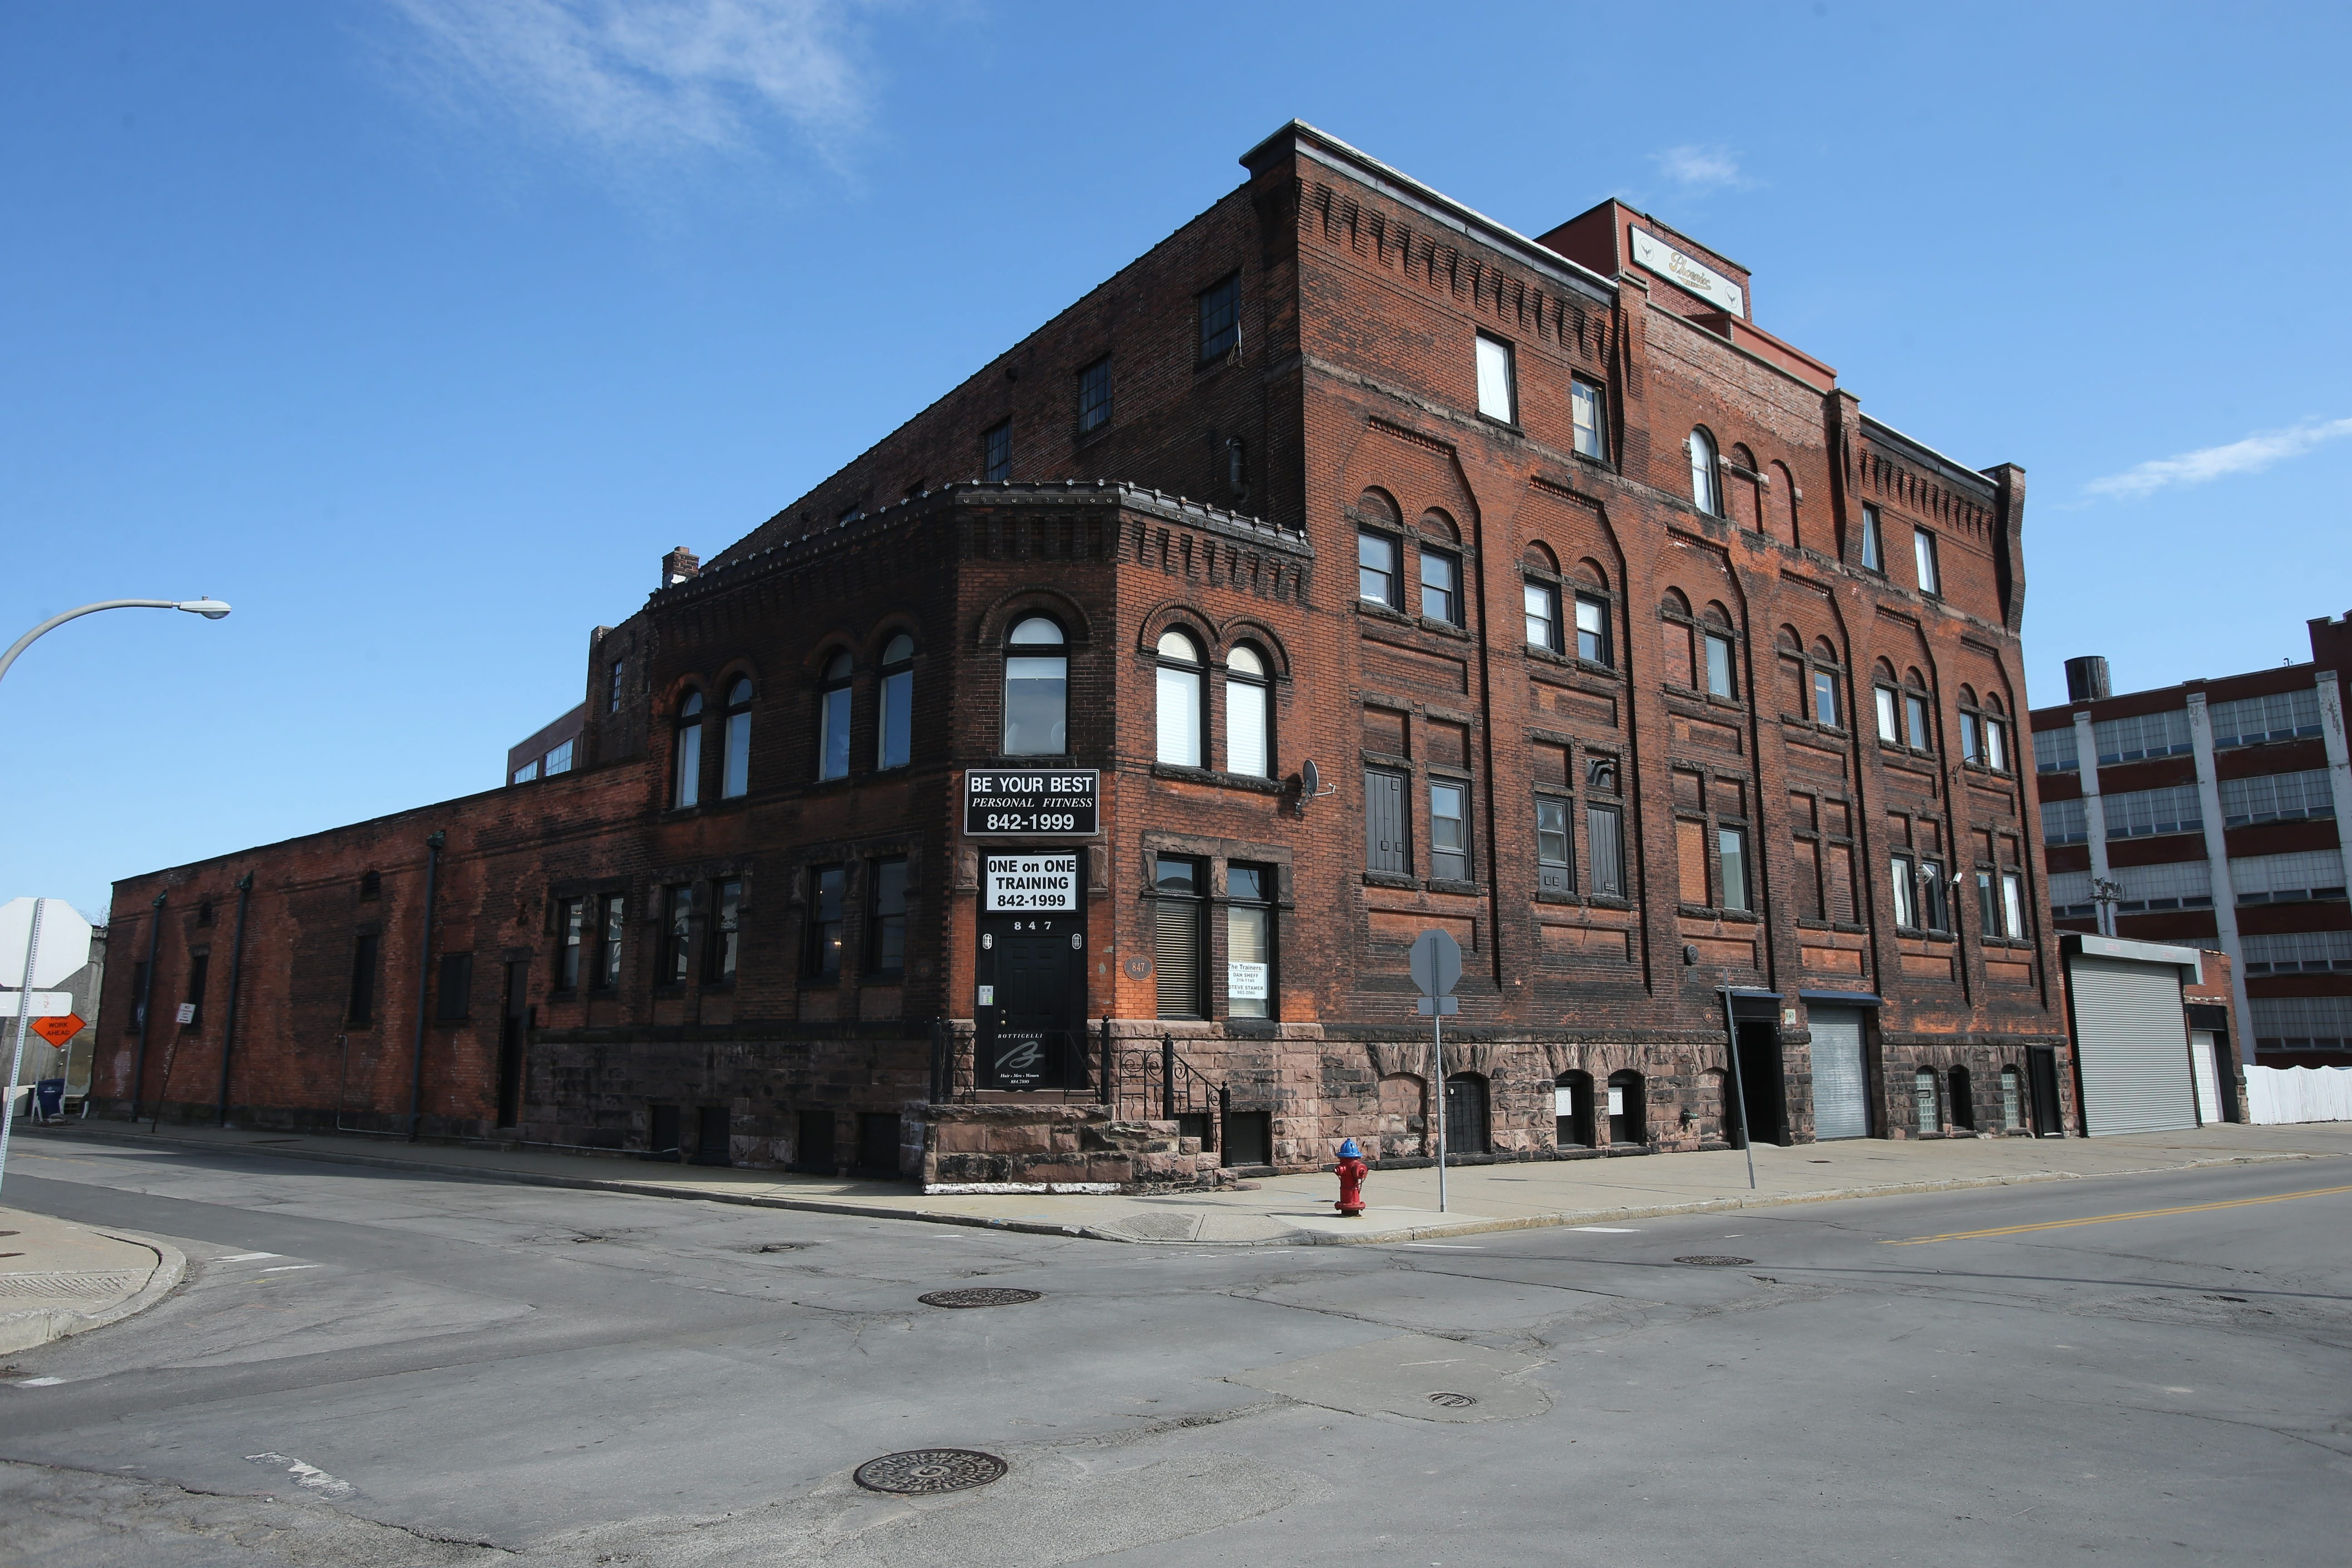 In buying former Phoenix Brewery Co. building at 847 Washington St., Nick Sinatra plans up to 40 high-end apartments.